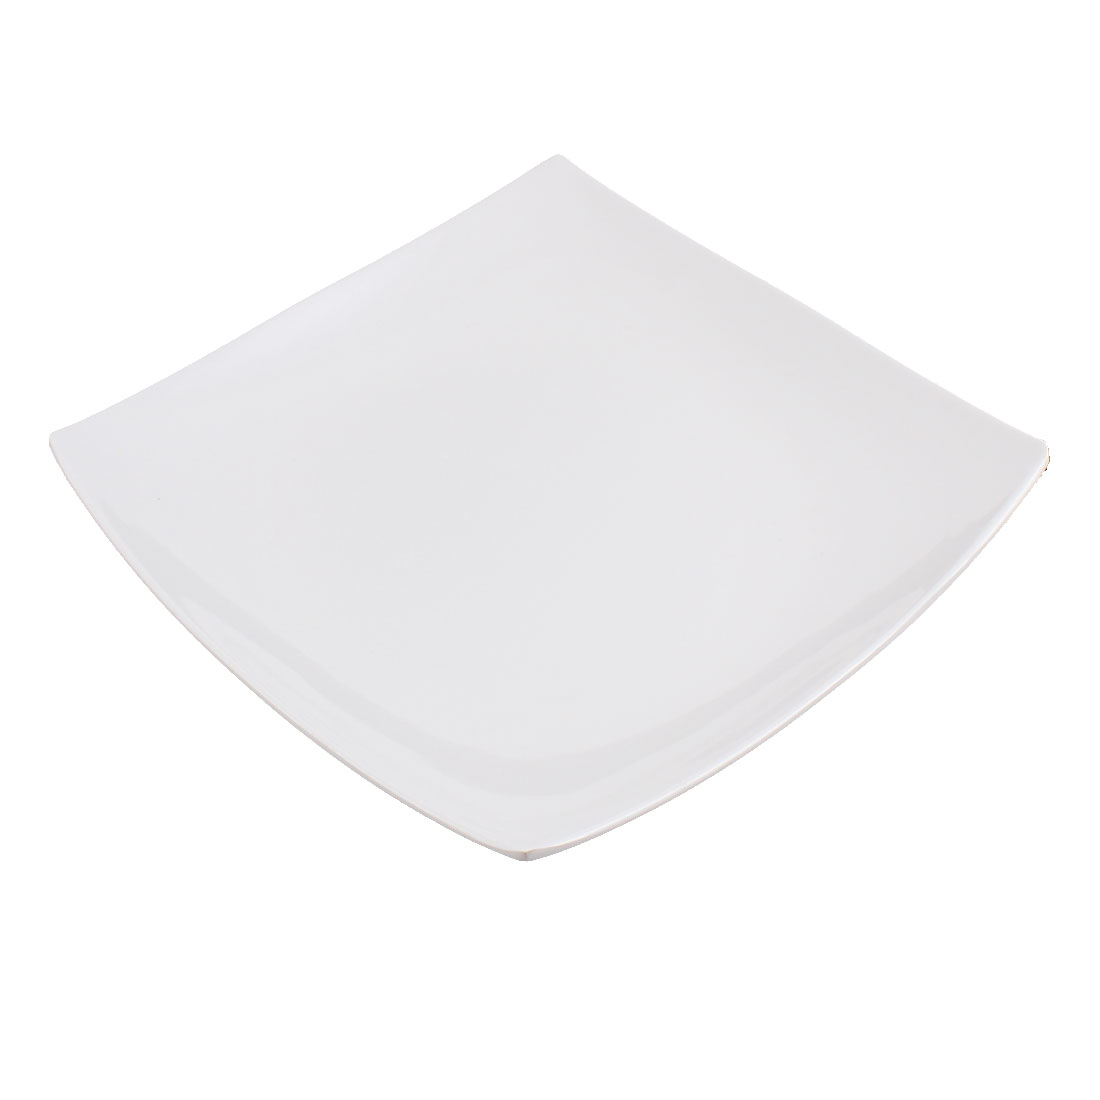 "Dinnerware Plastic Square Shaped Steak Food Dish Plate 8.5"" x 8.5"""